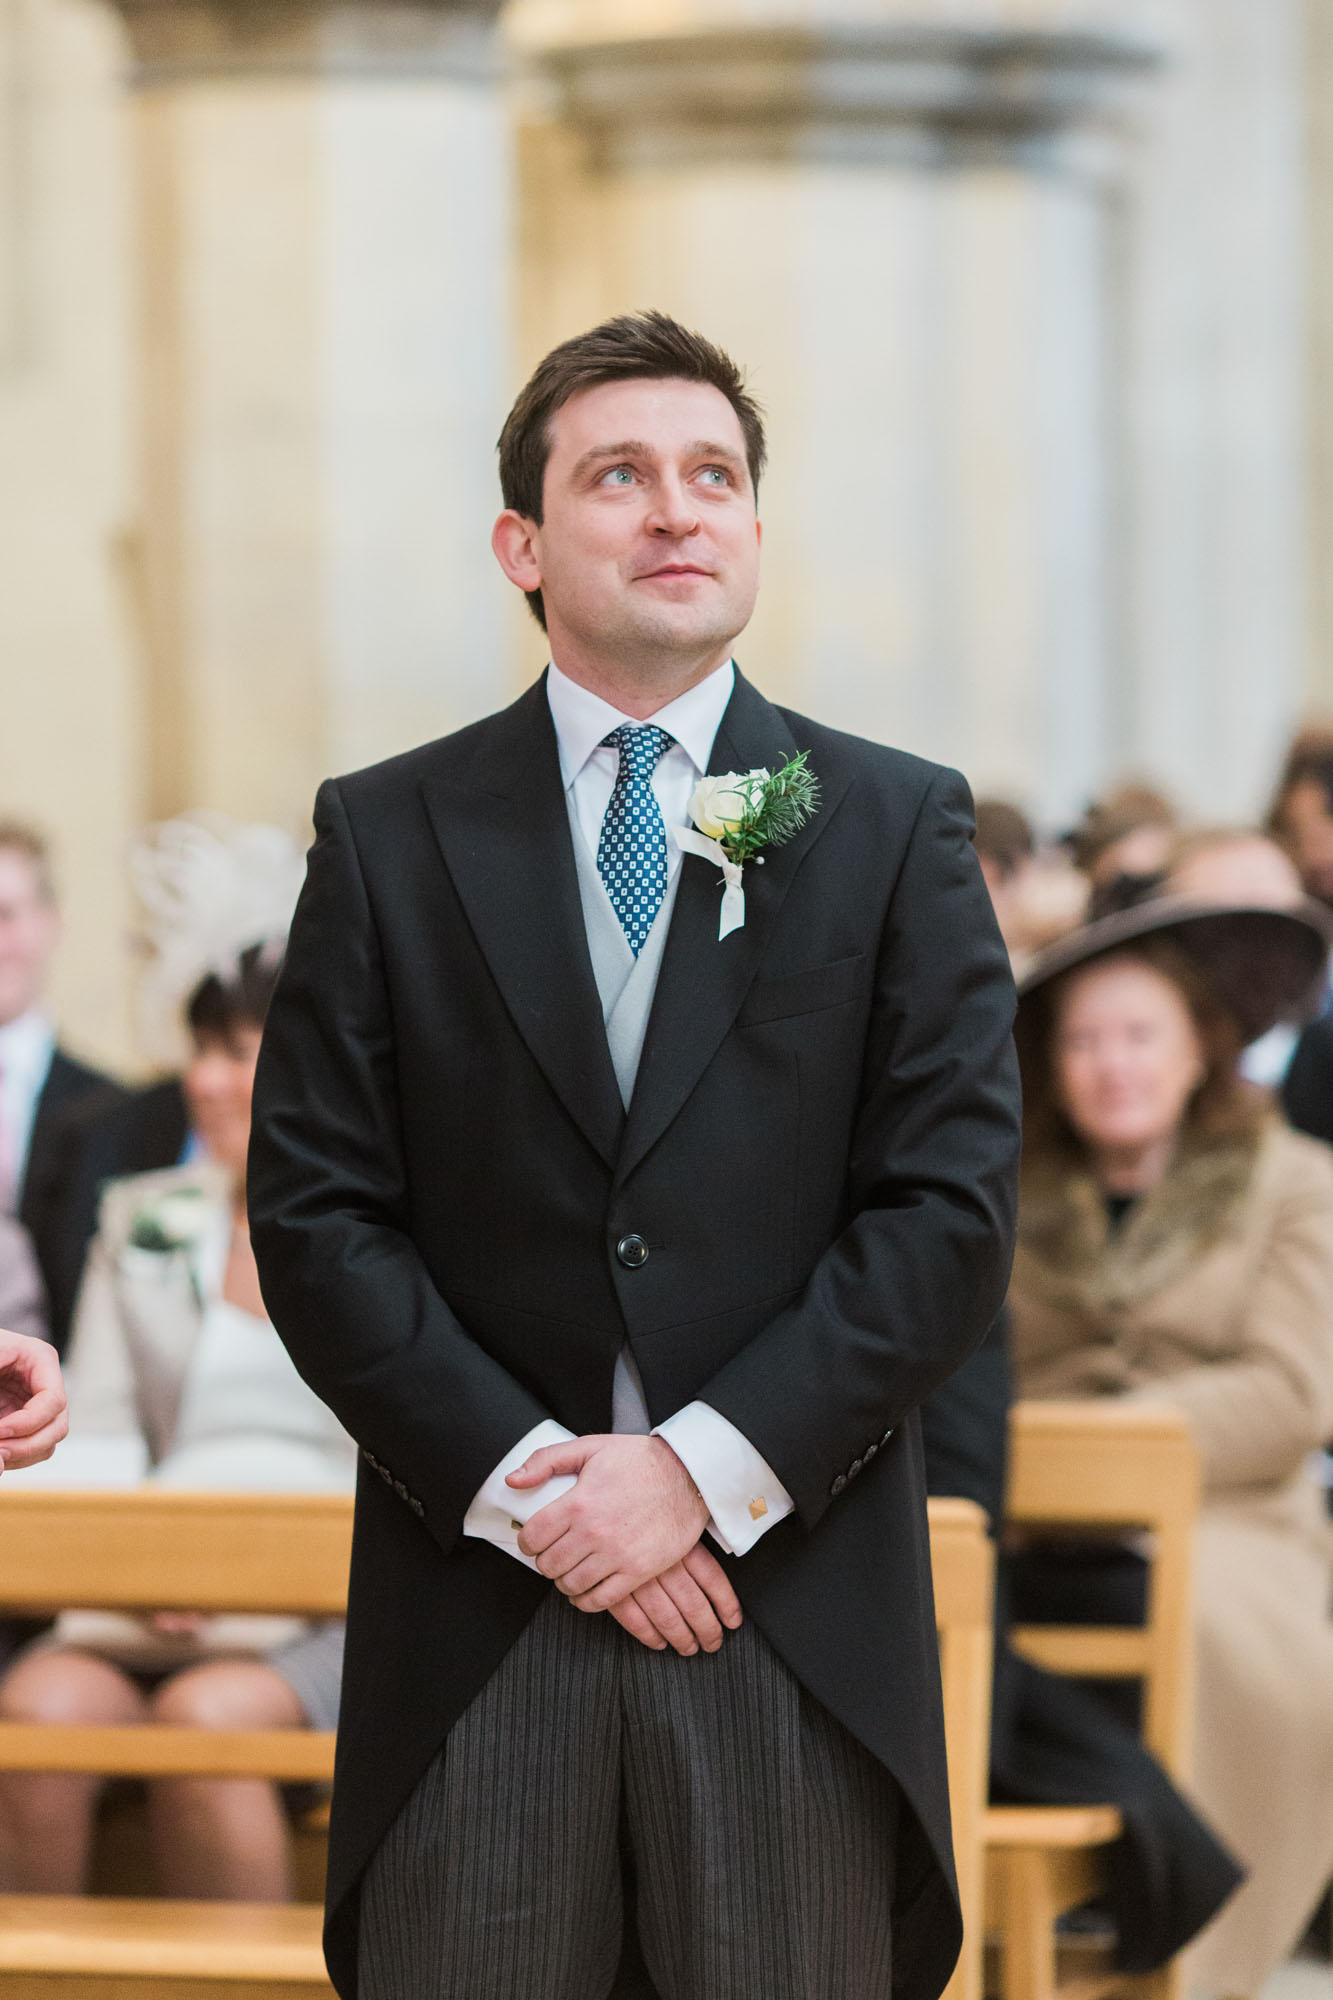 Groom waiting for bride at the alter of Boxgrove Priory wedding